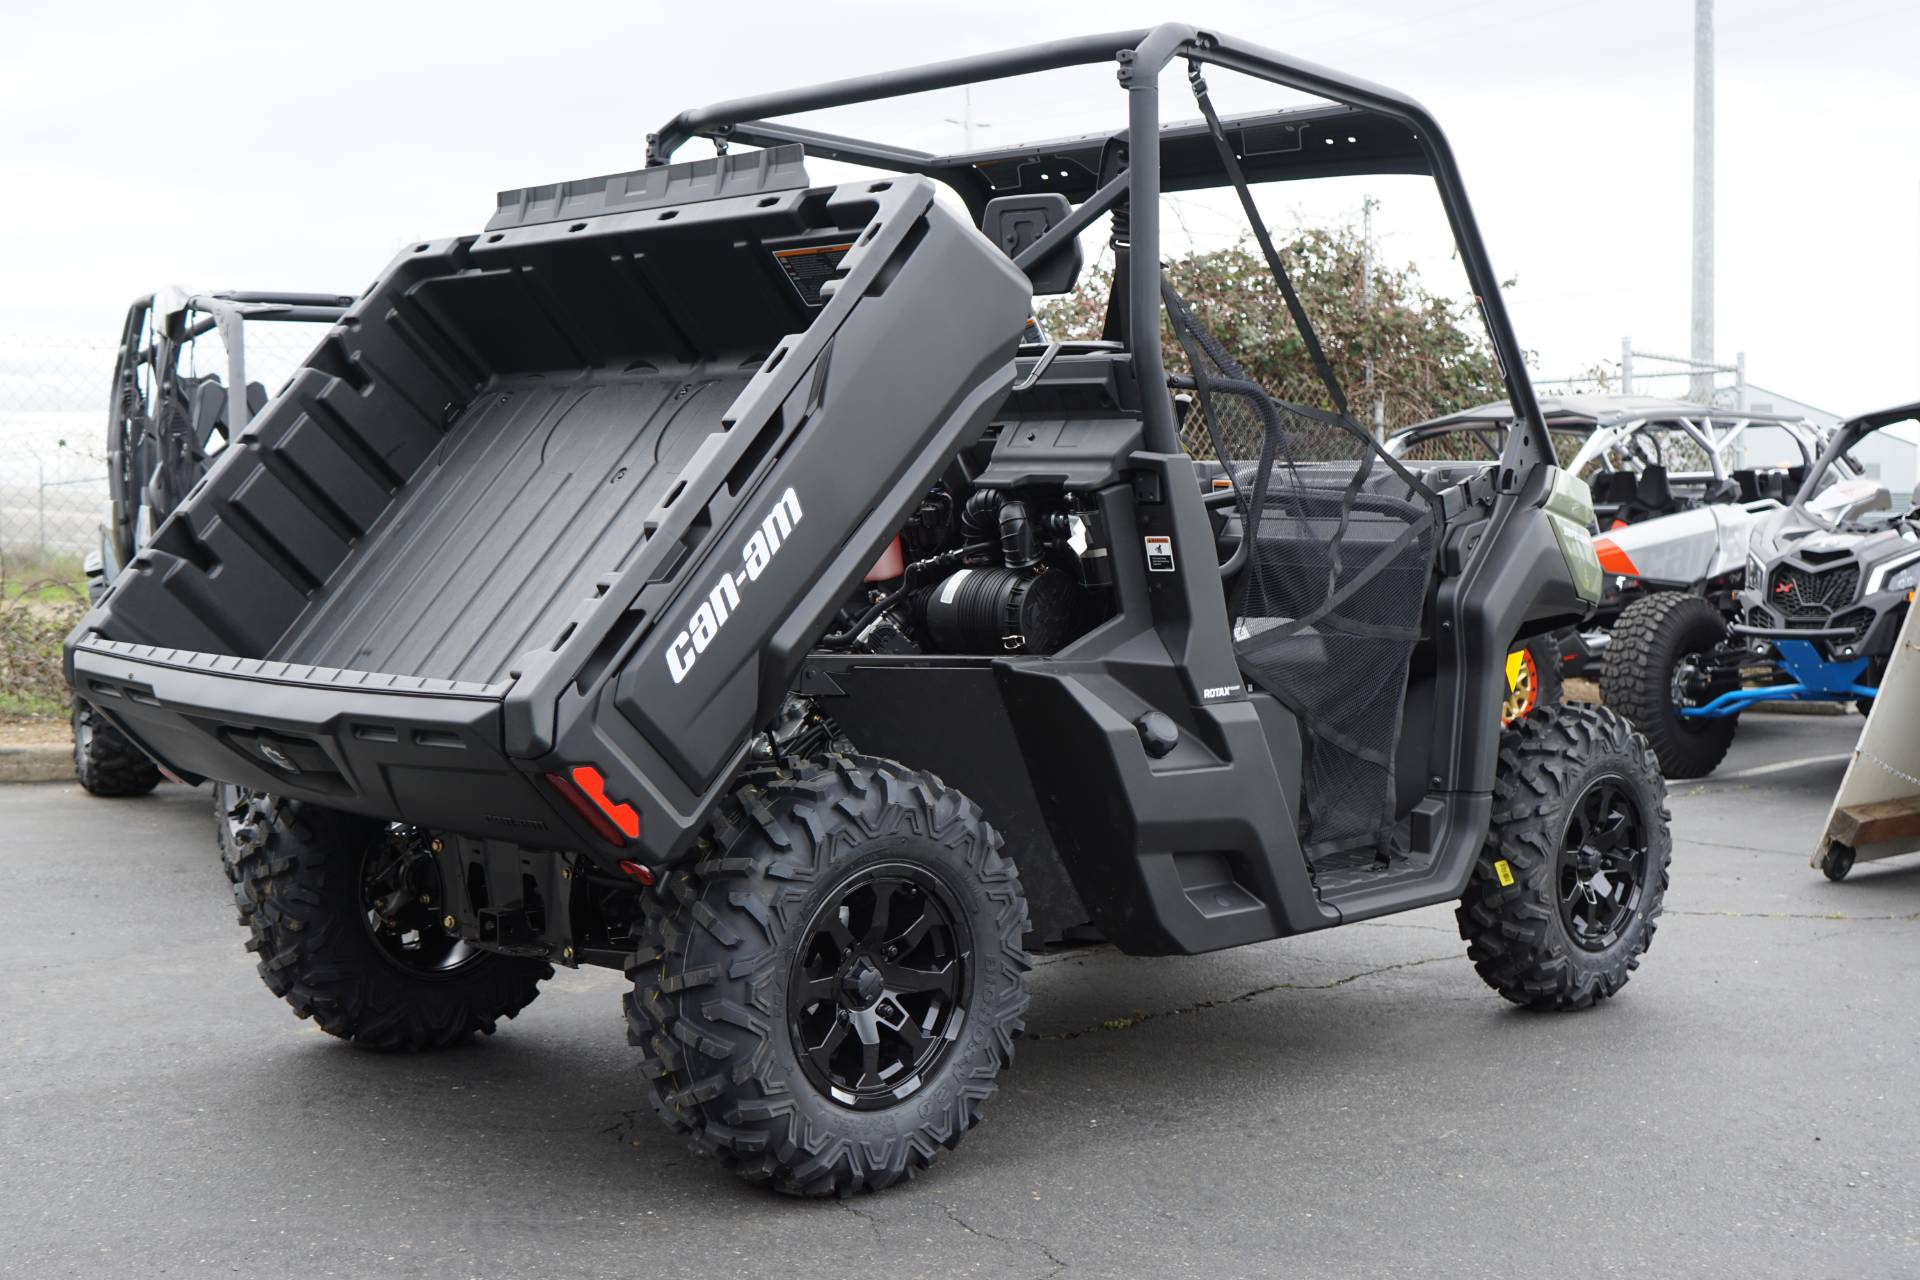 2019 Can-Am™ Defender DPS HD8 9